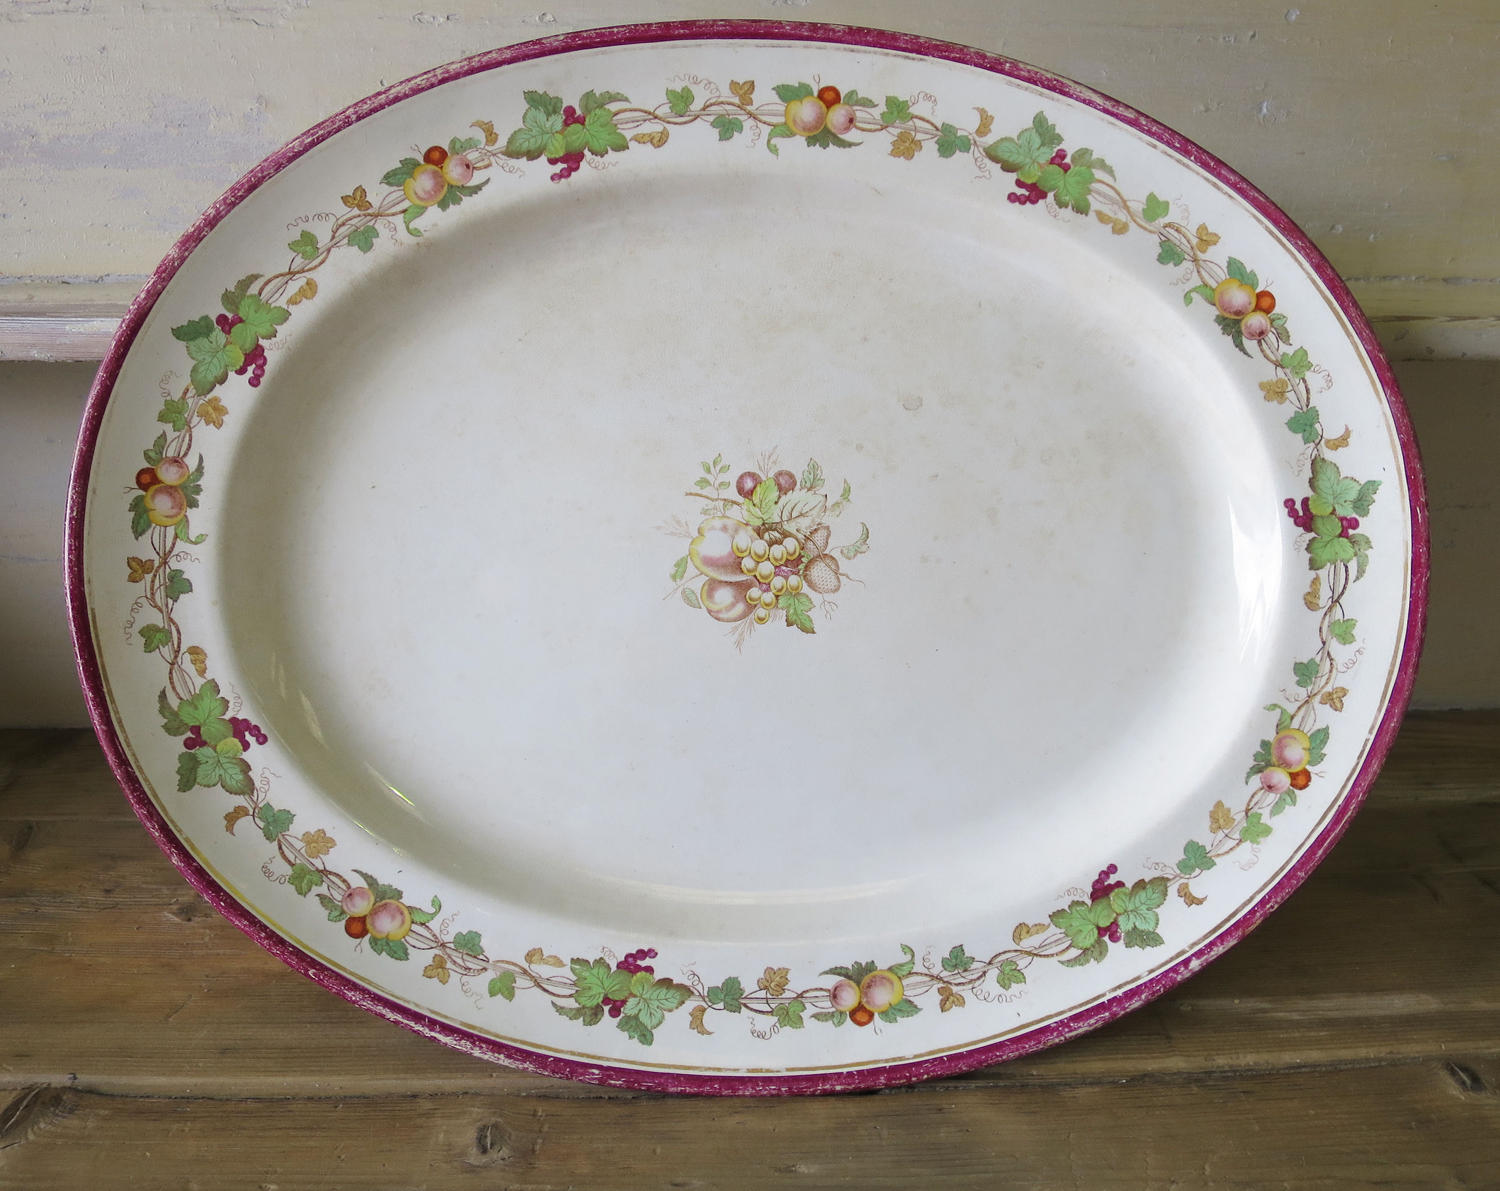 Large 19th century French Servery Plate - Circa 1850